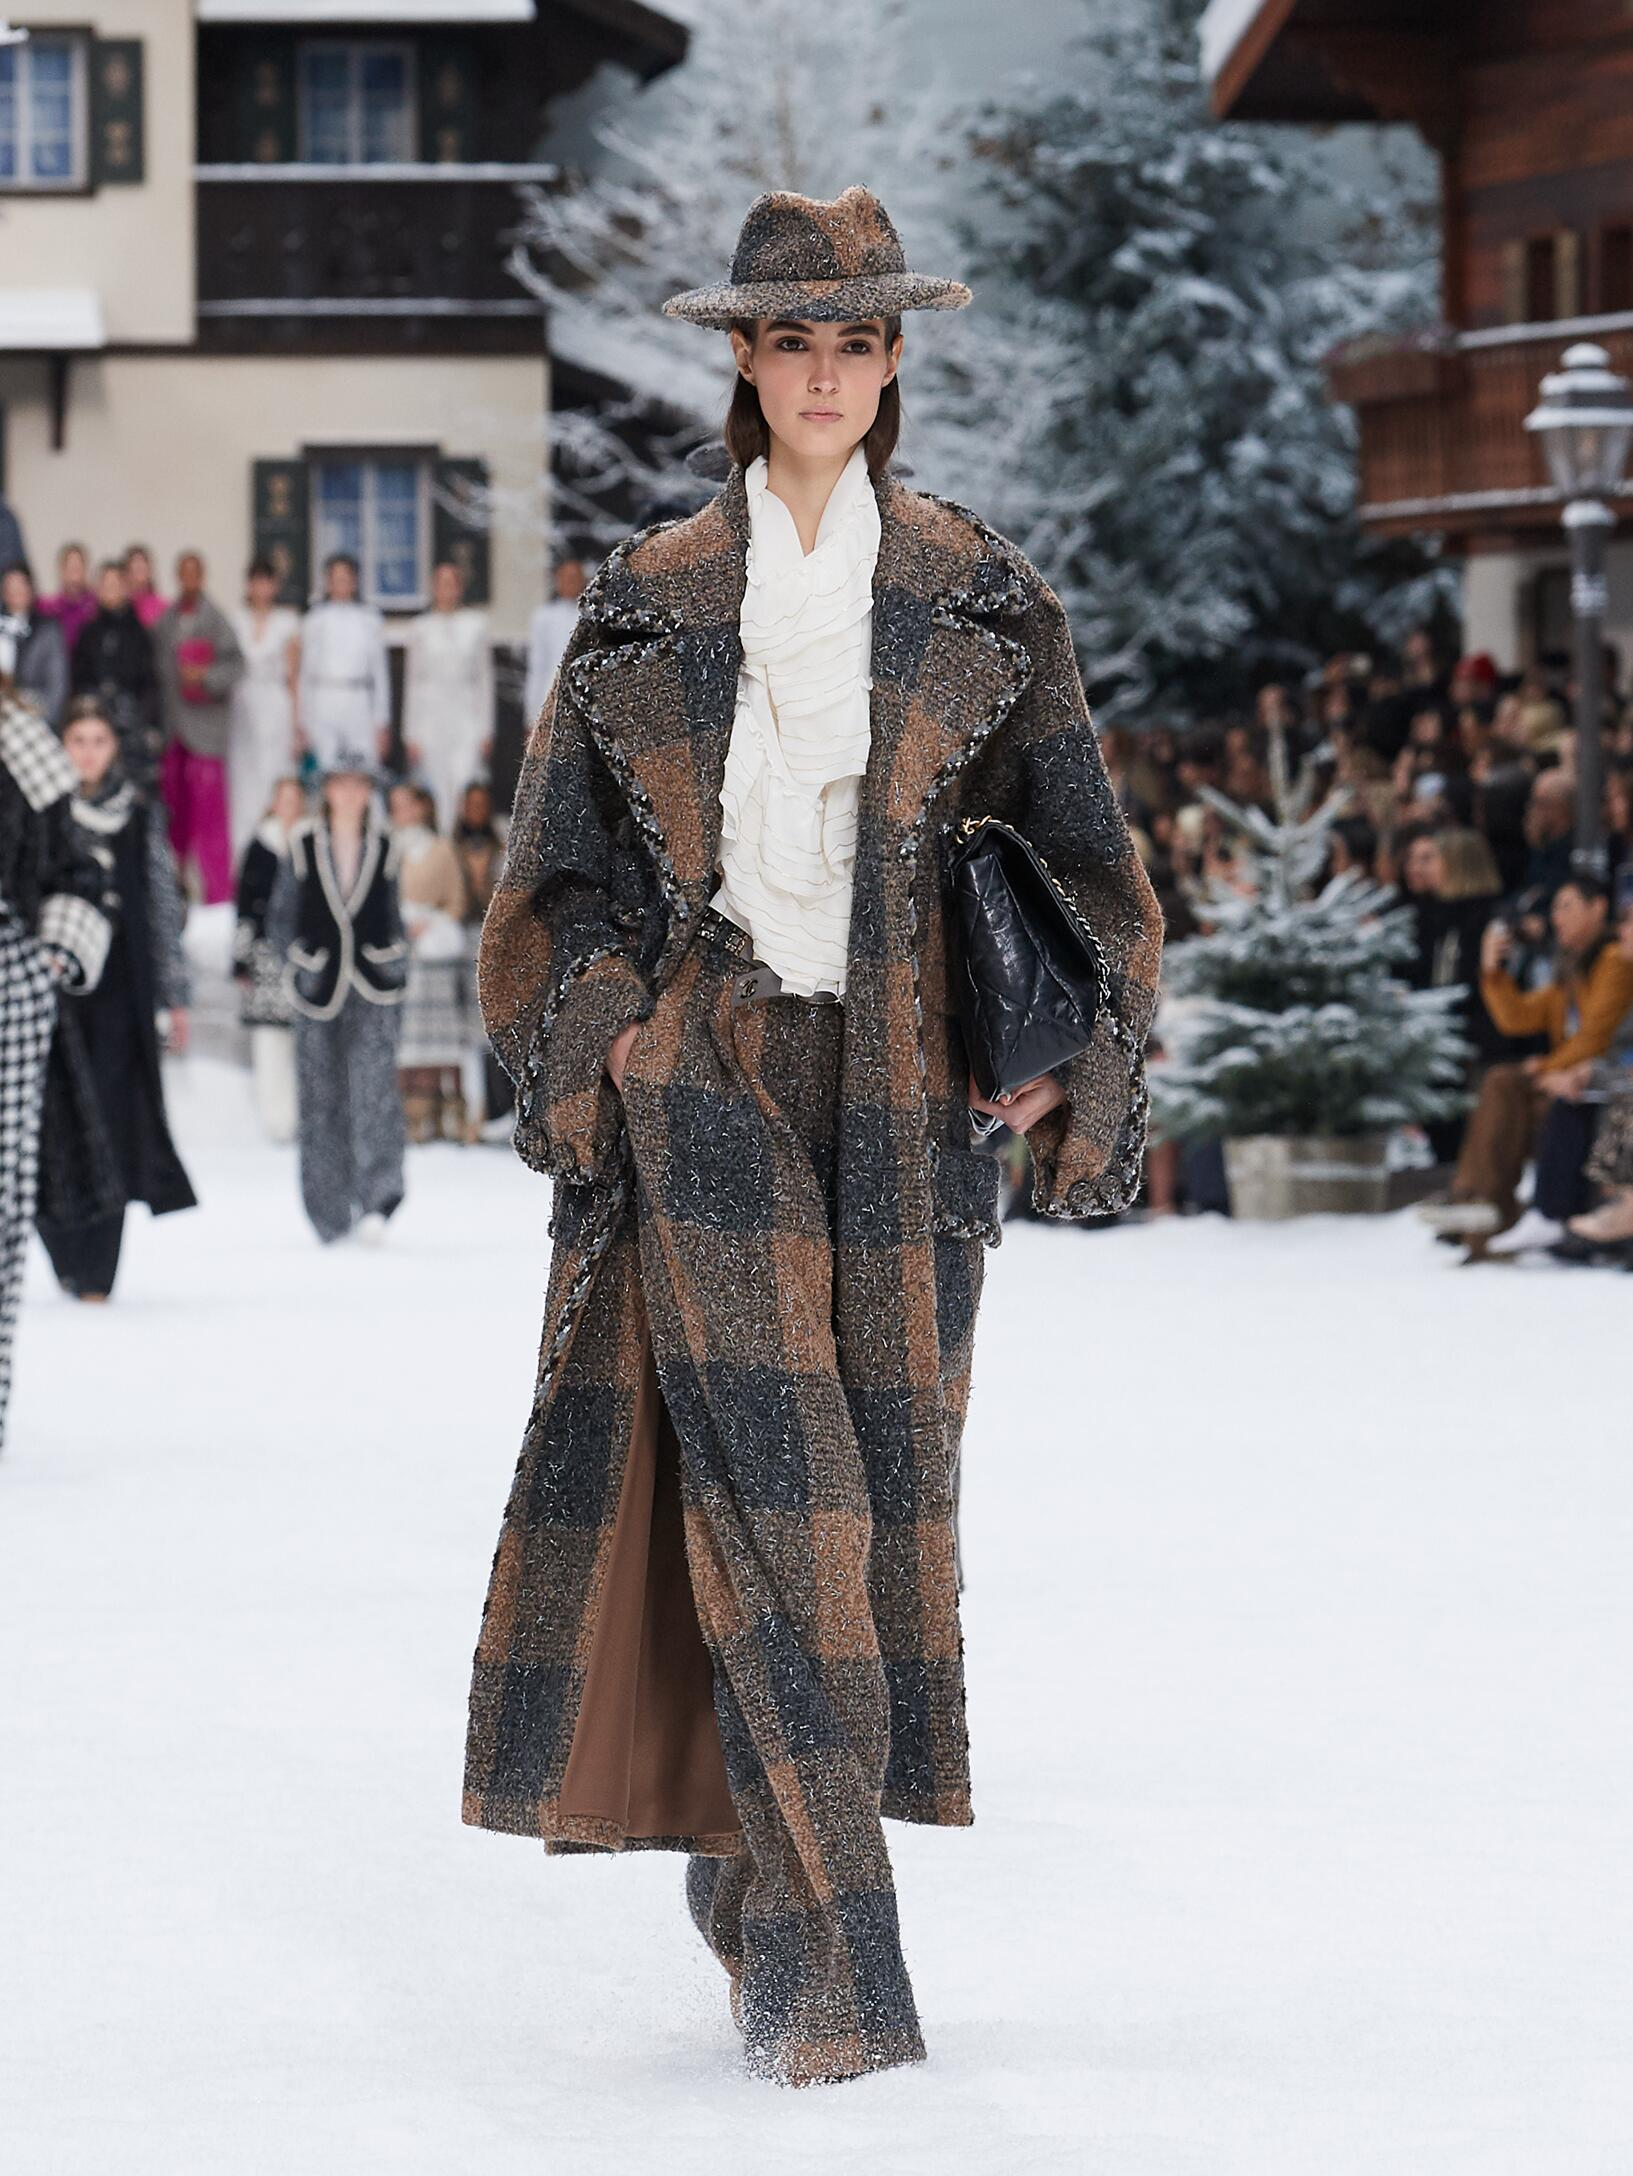 FW 2019-20 Fashion Show Chanel